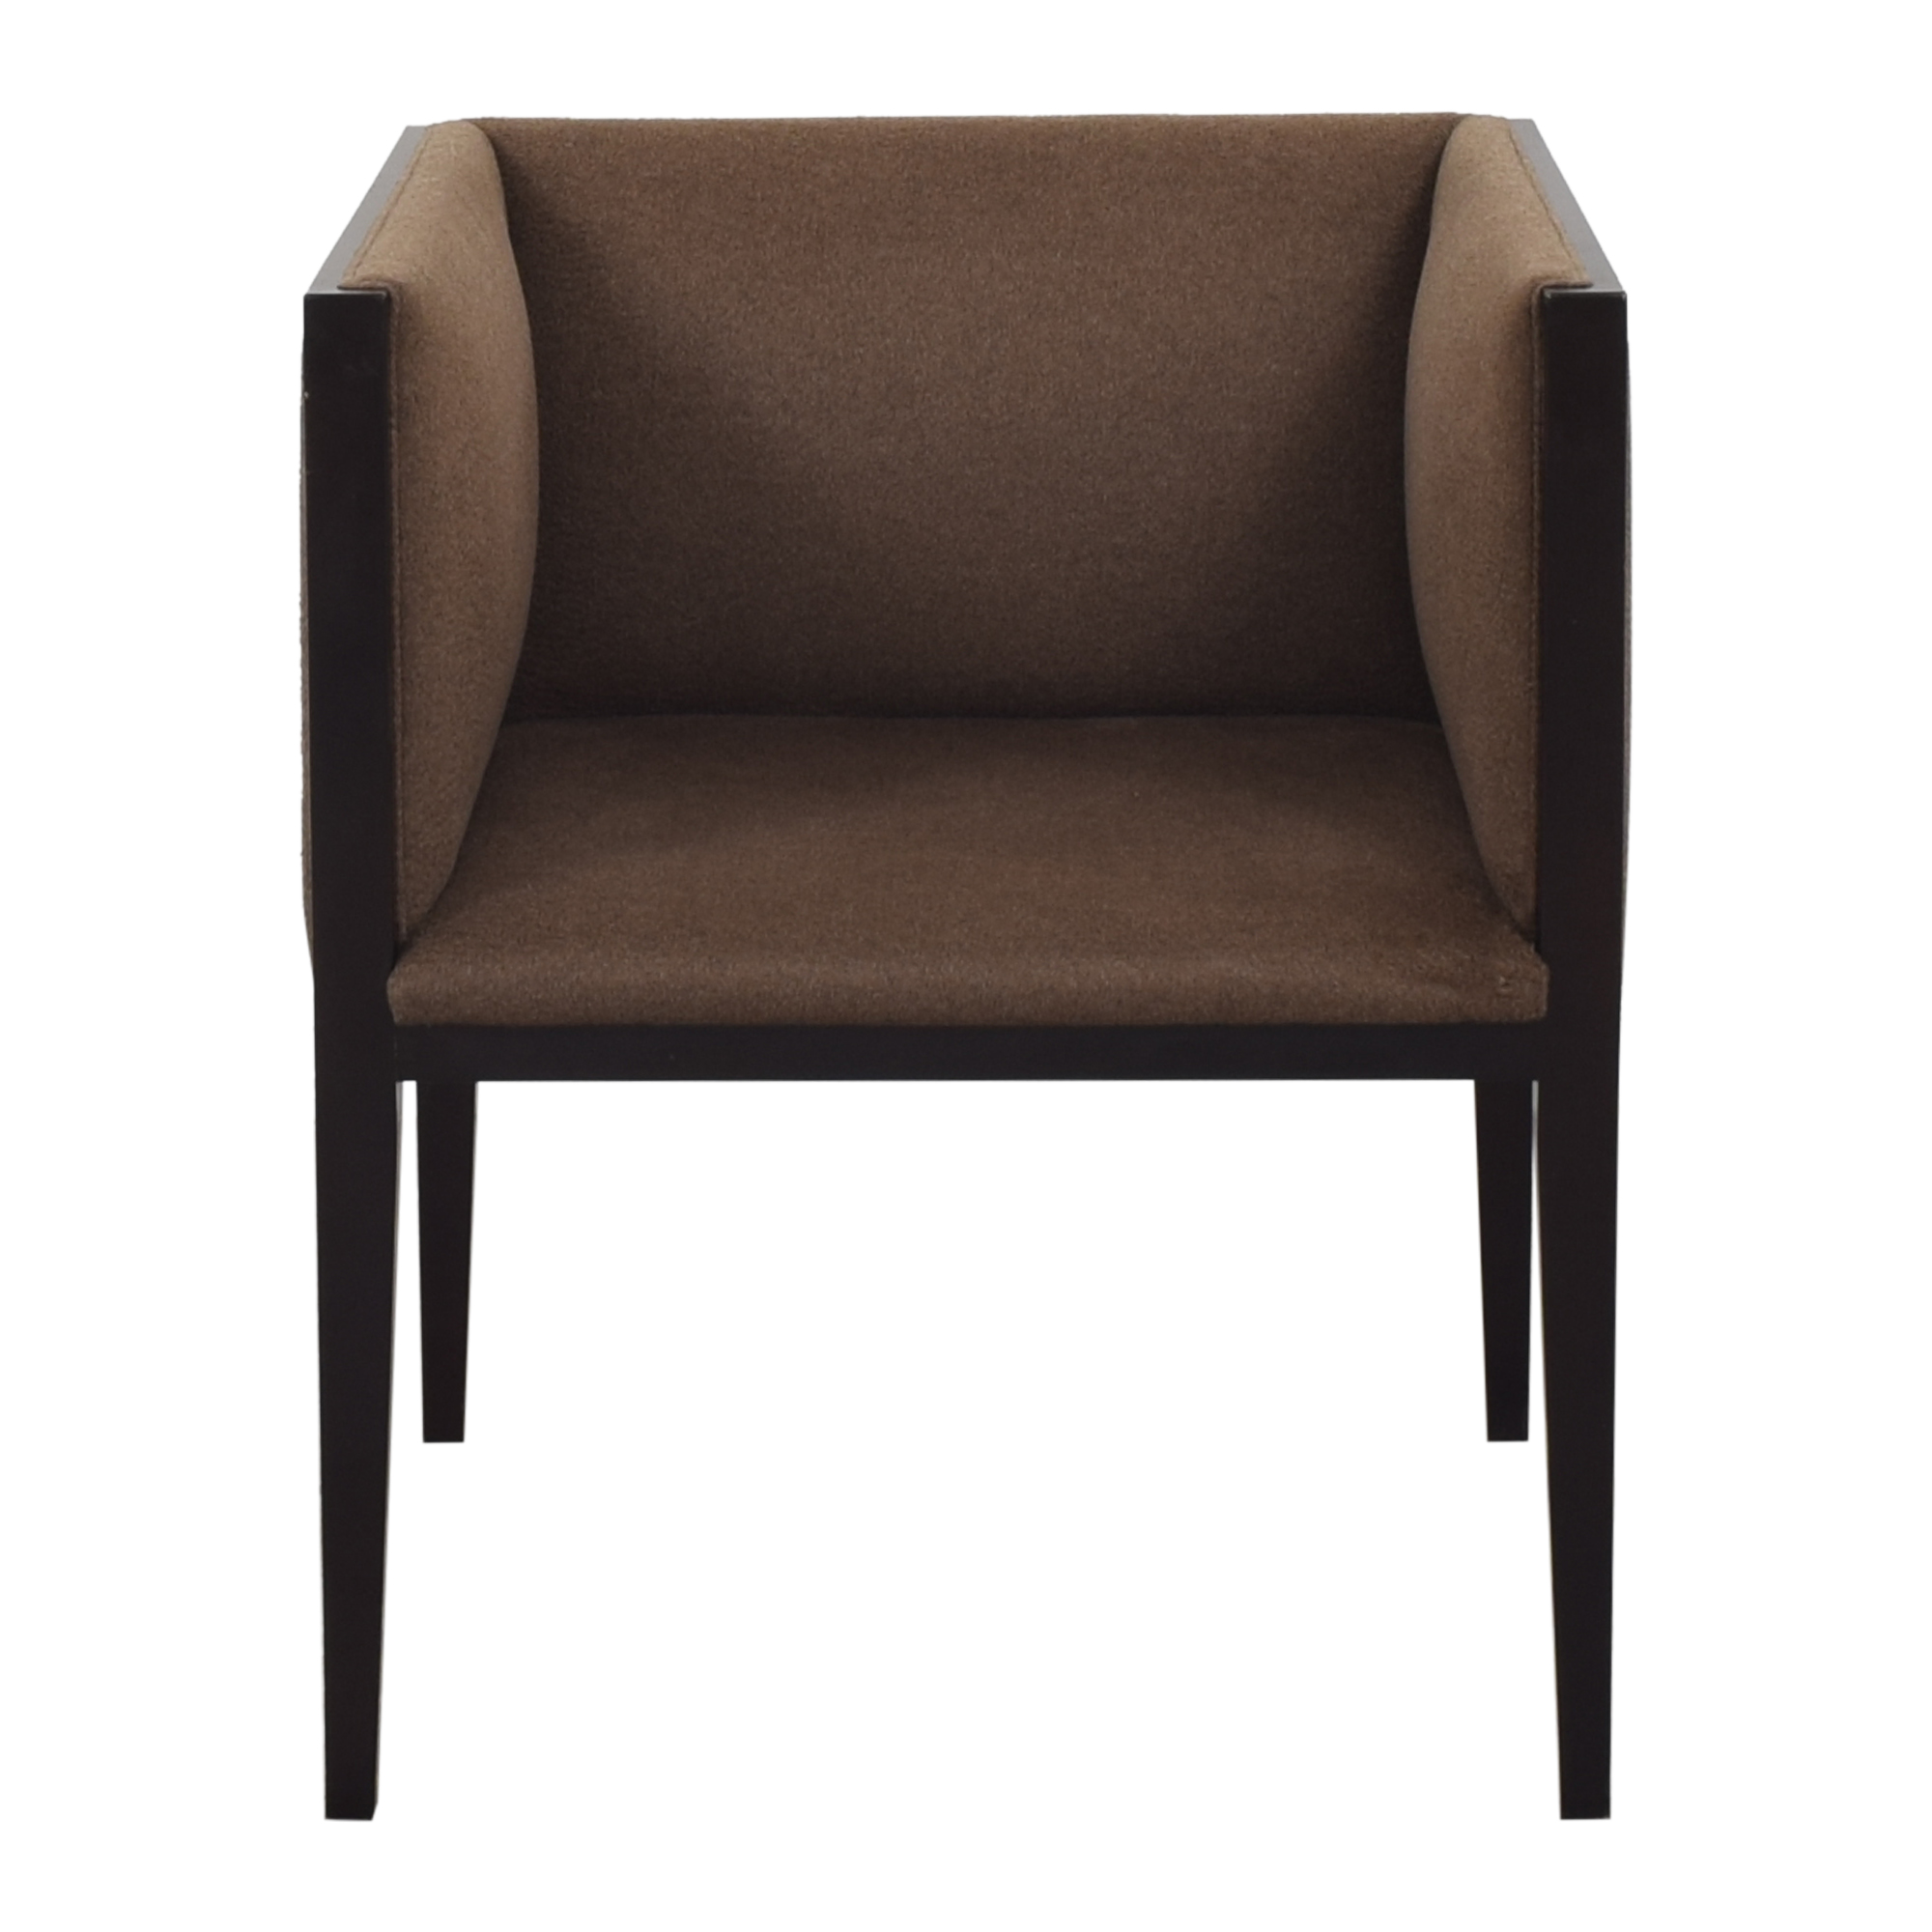 Hudson Furniture Contemporary Dining Chair / Chairs